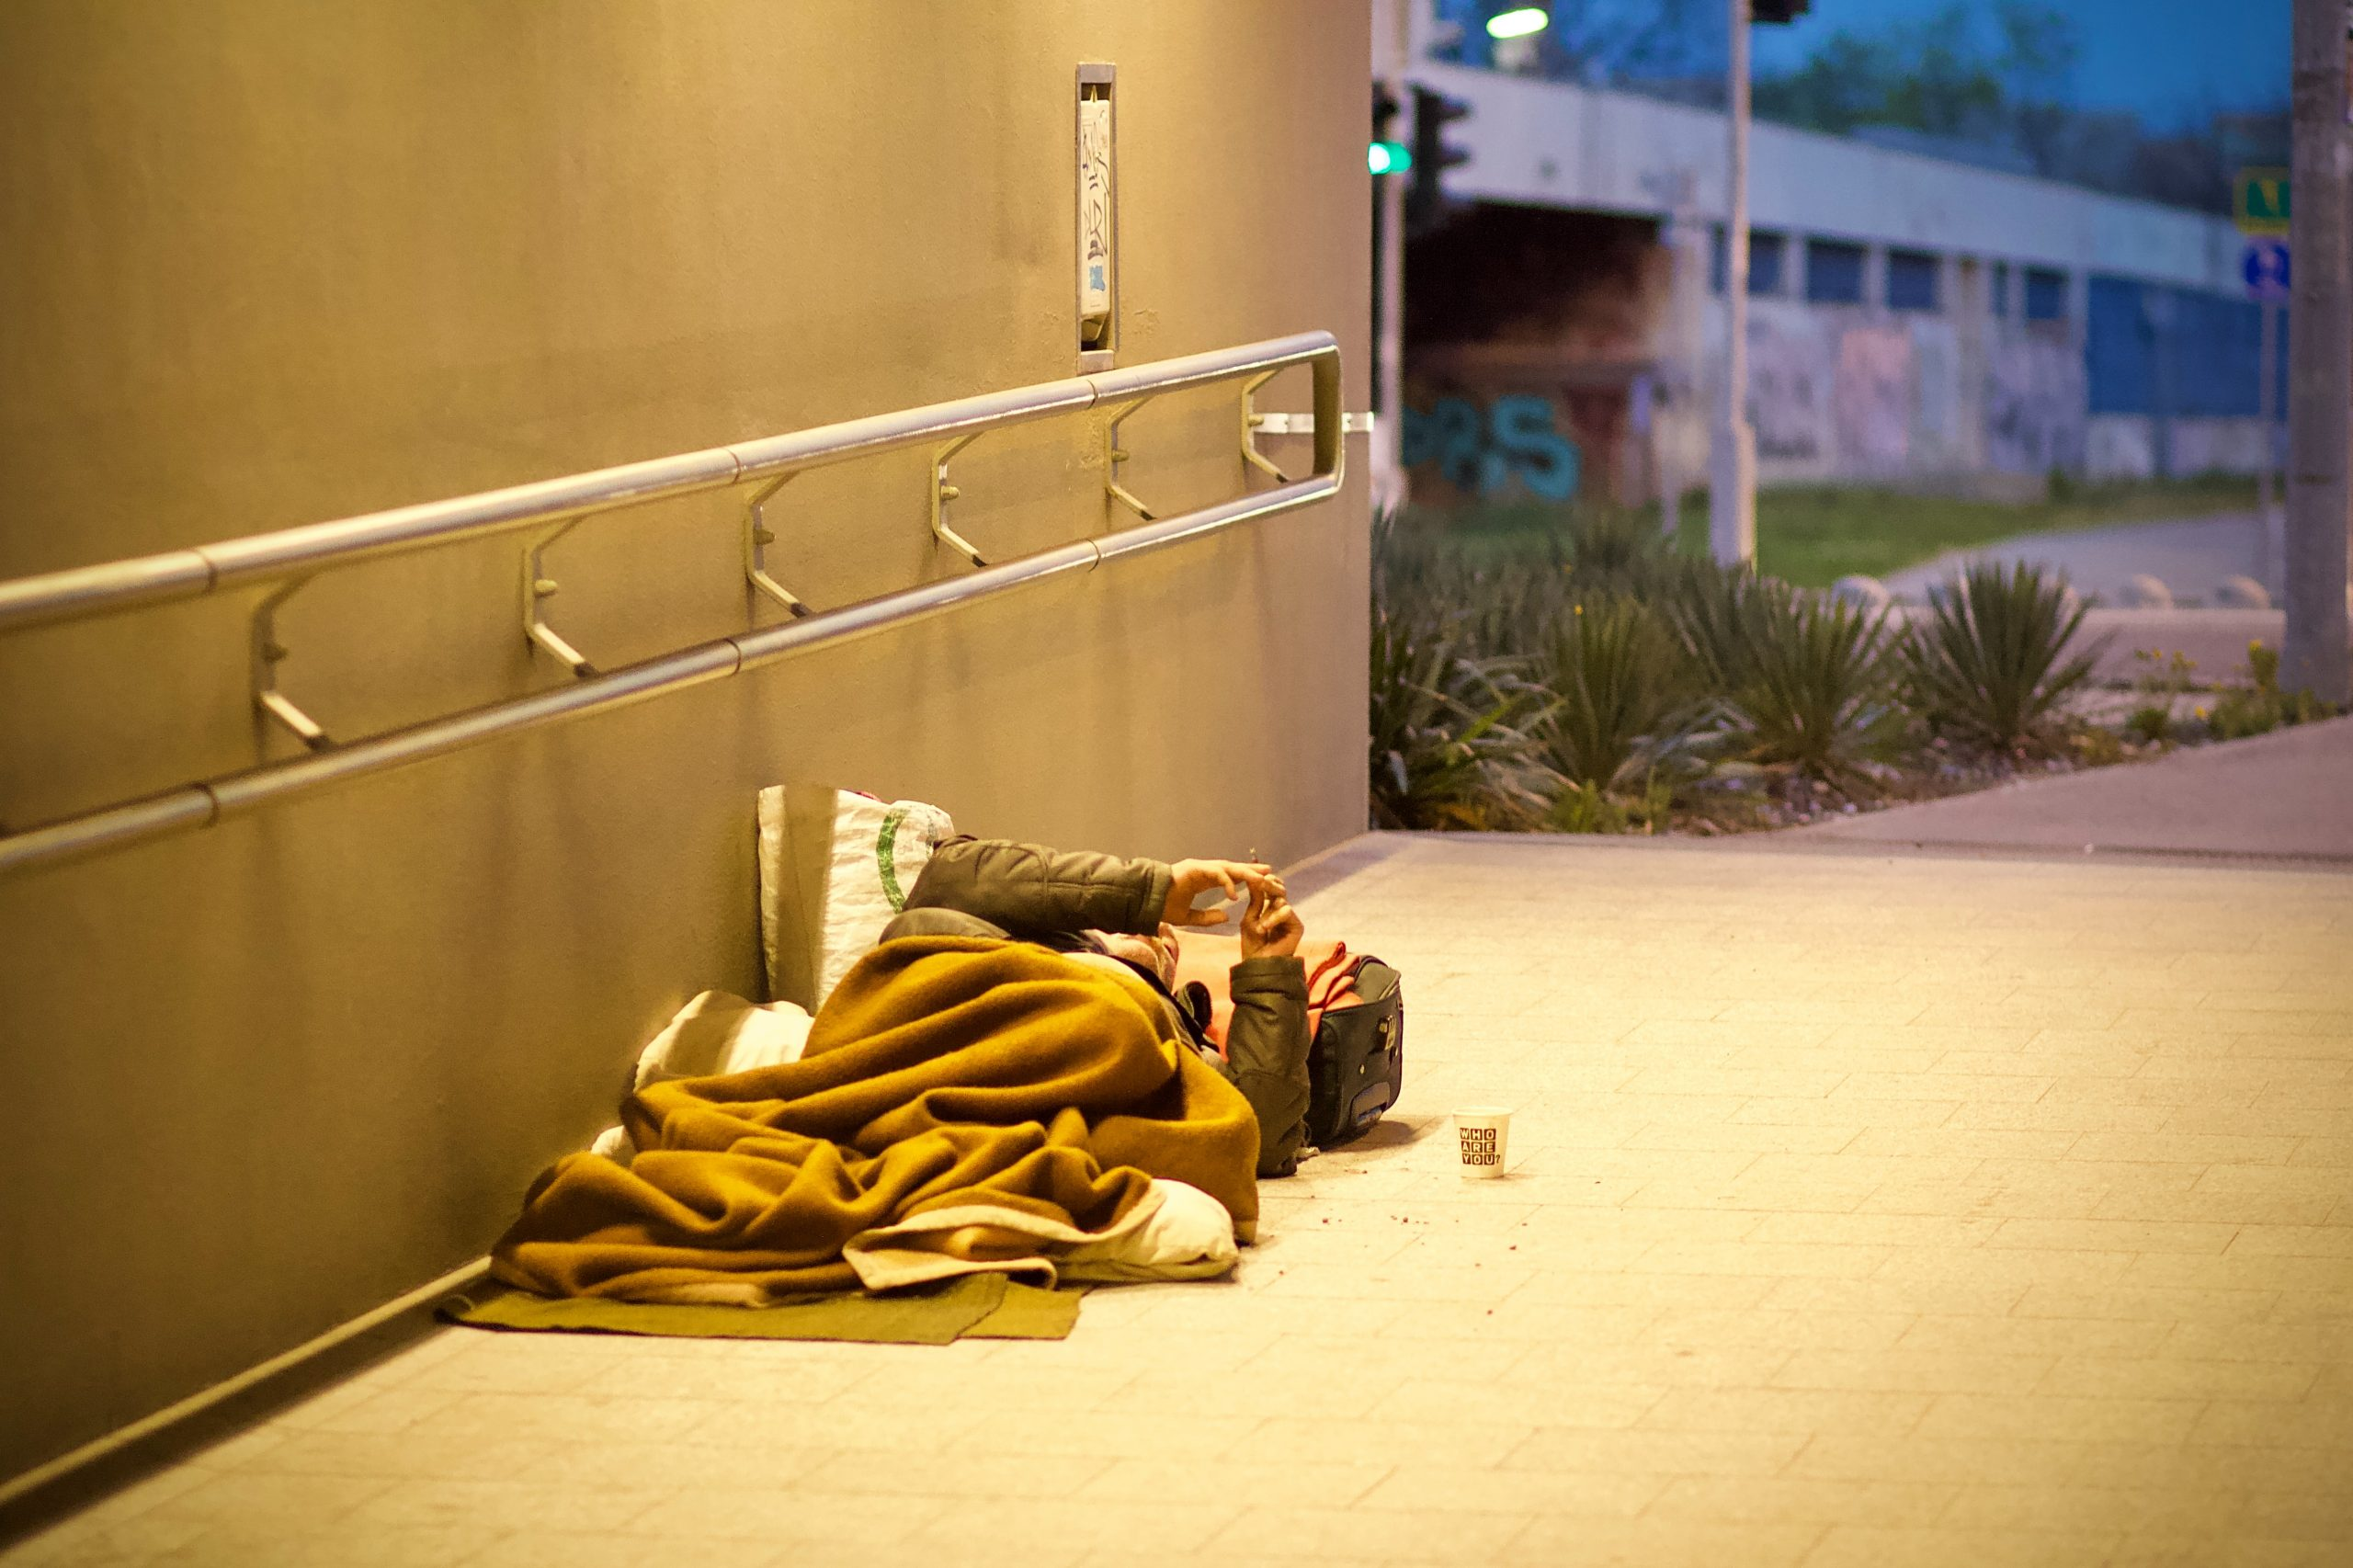 A homeless person sleeps under blankets on the street.